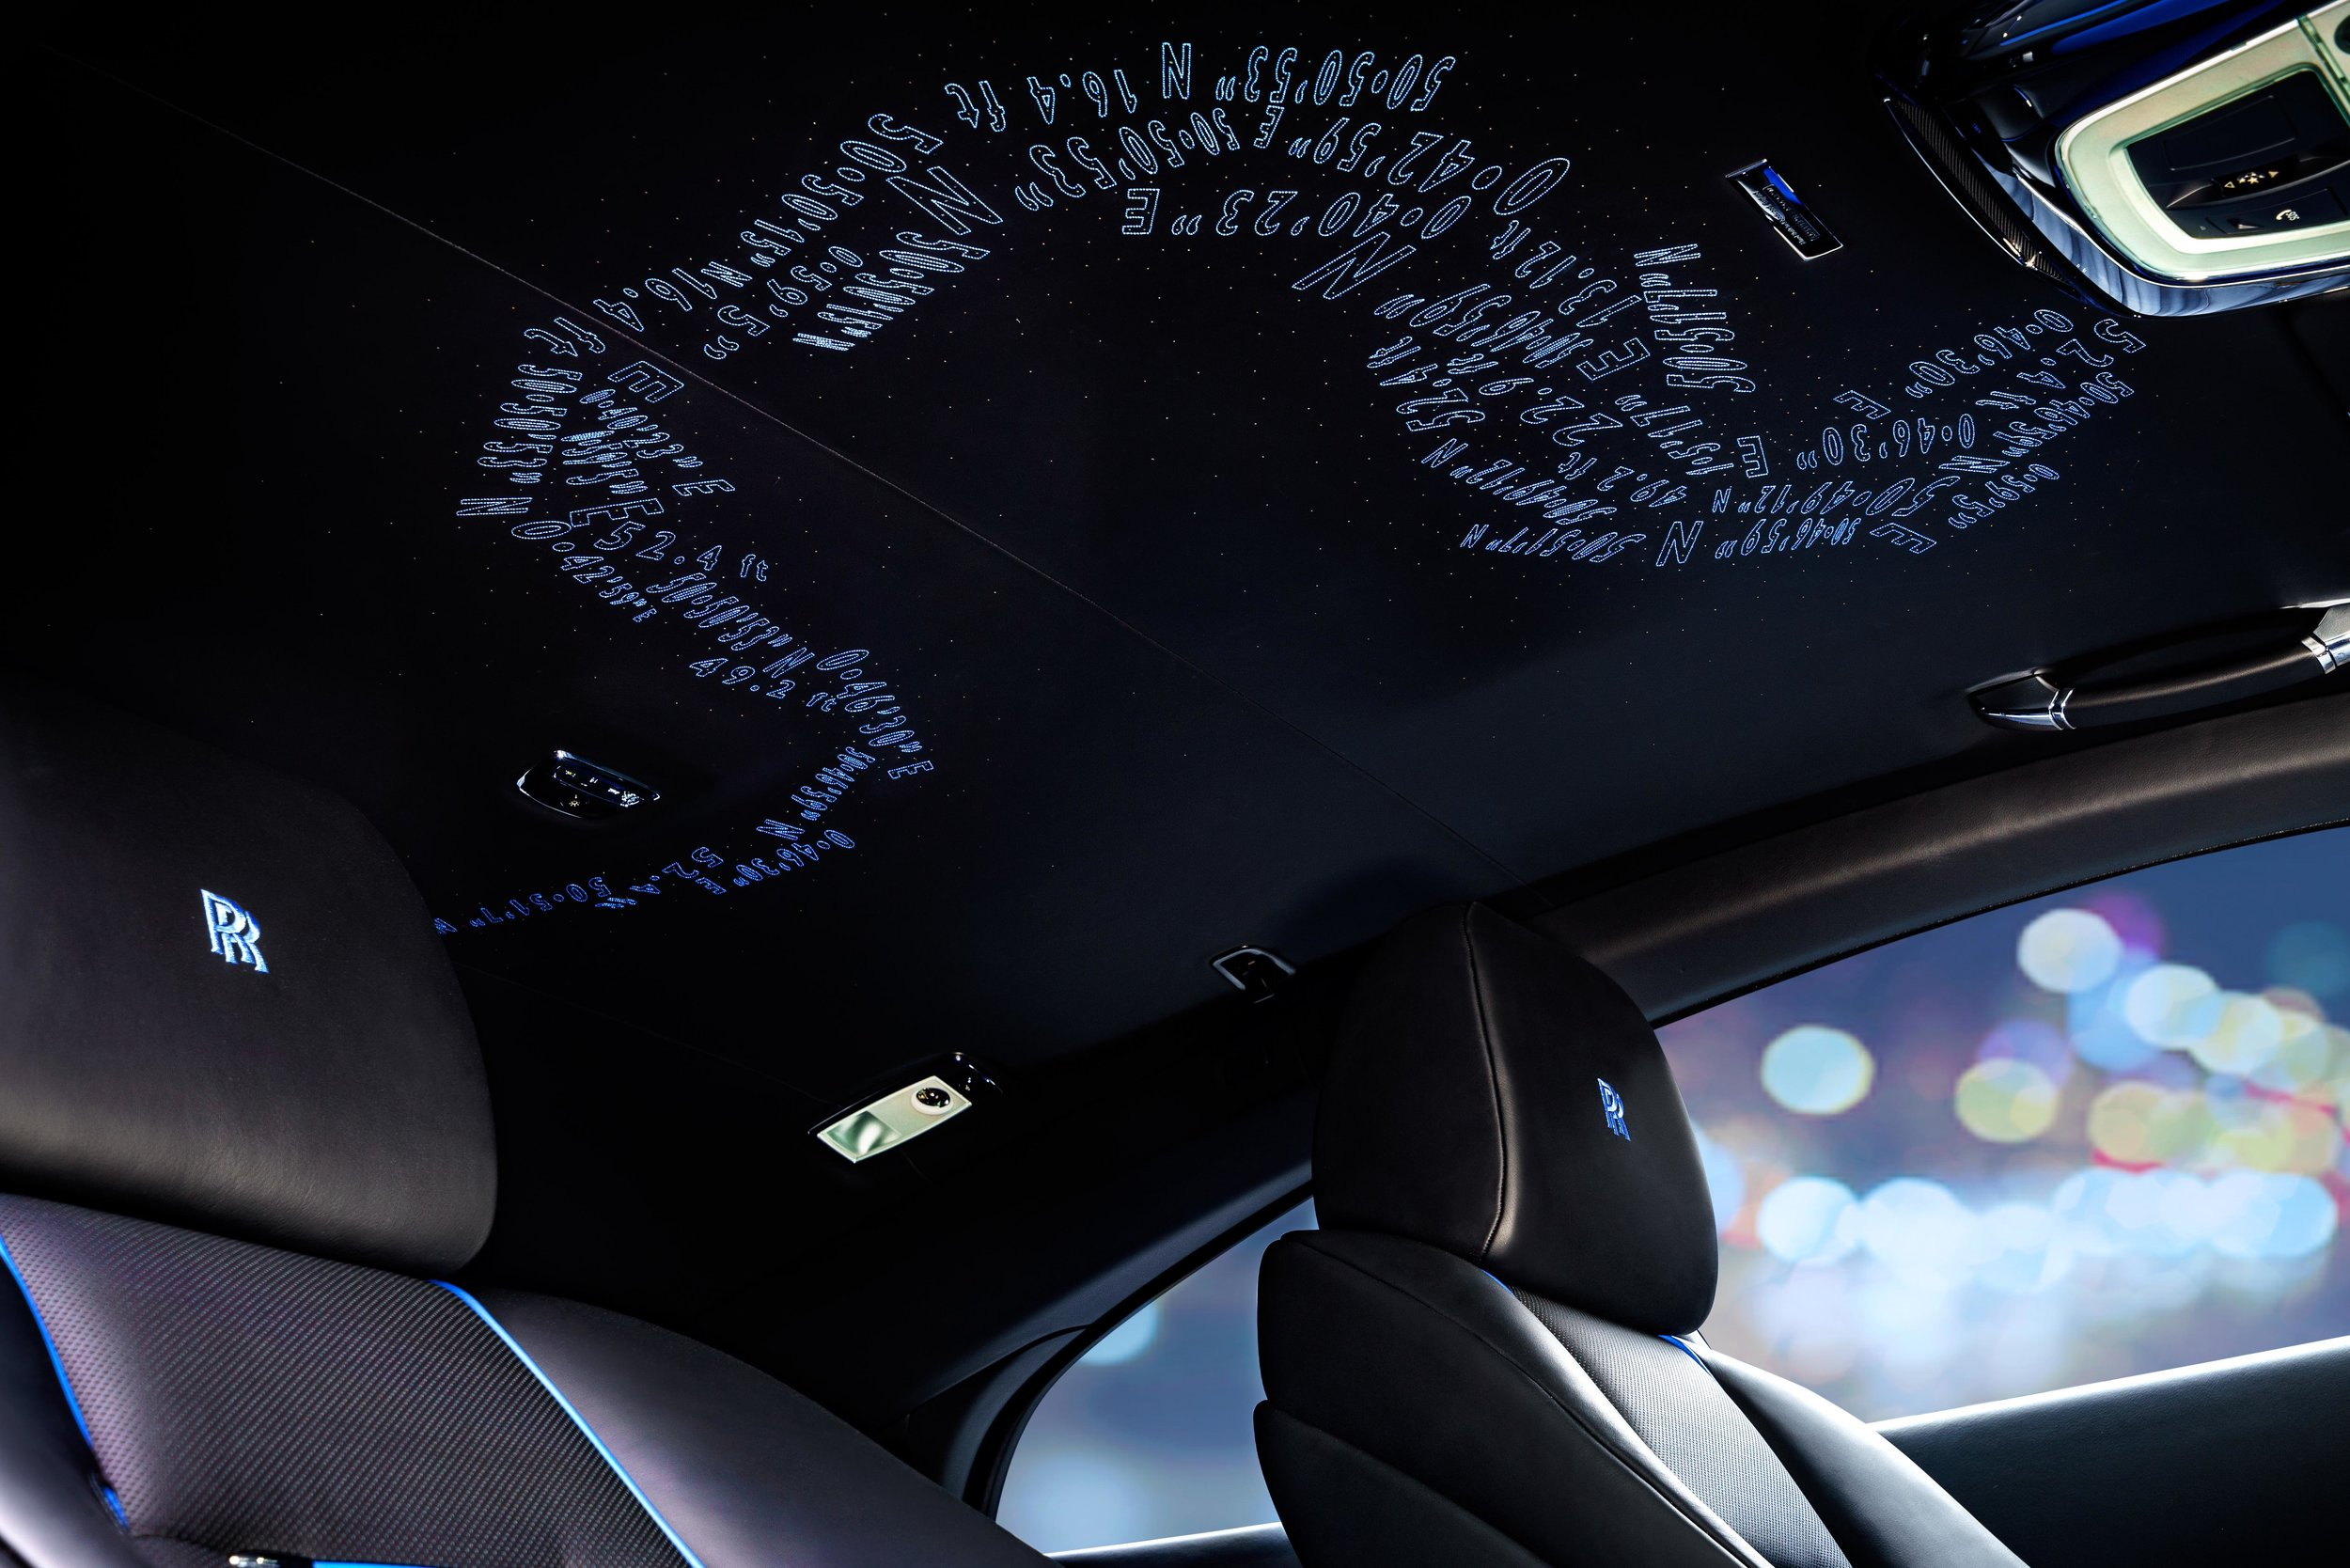 The coordinates of the localities of the Rolls Royce artisans, in a stunning homage to the craftspeople behind the luxury supercars.